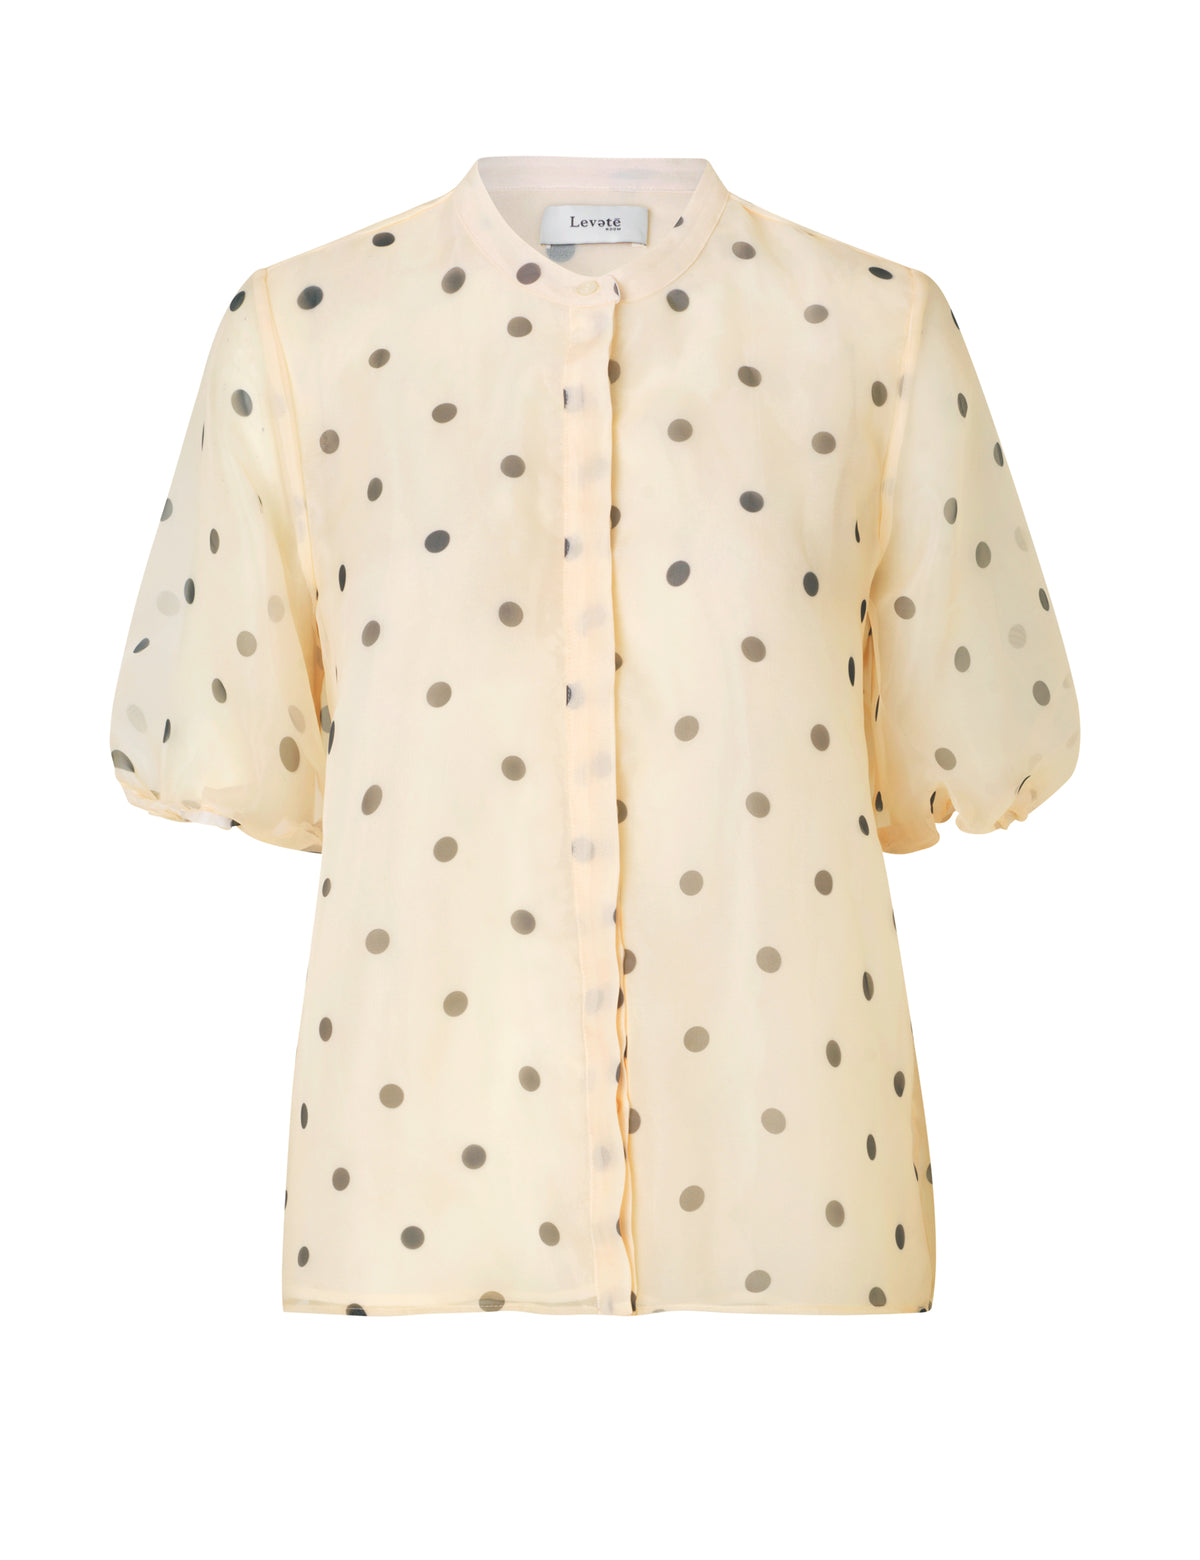 Kada Puff Sleeve Shirt - Black/White Dot